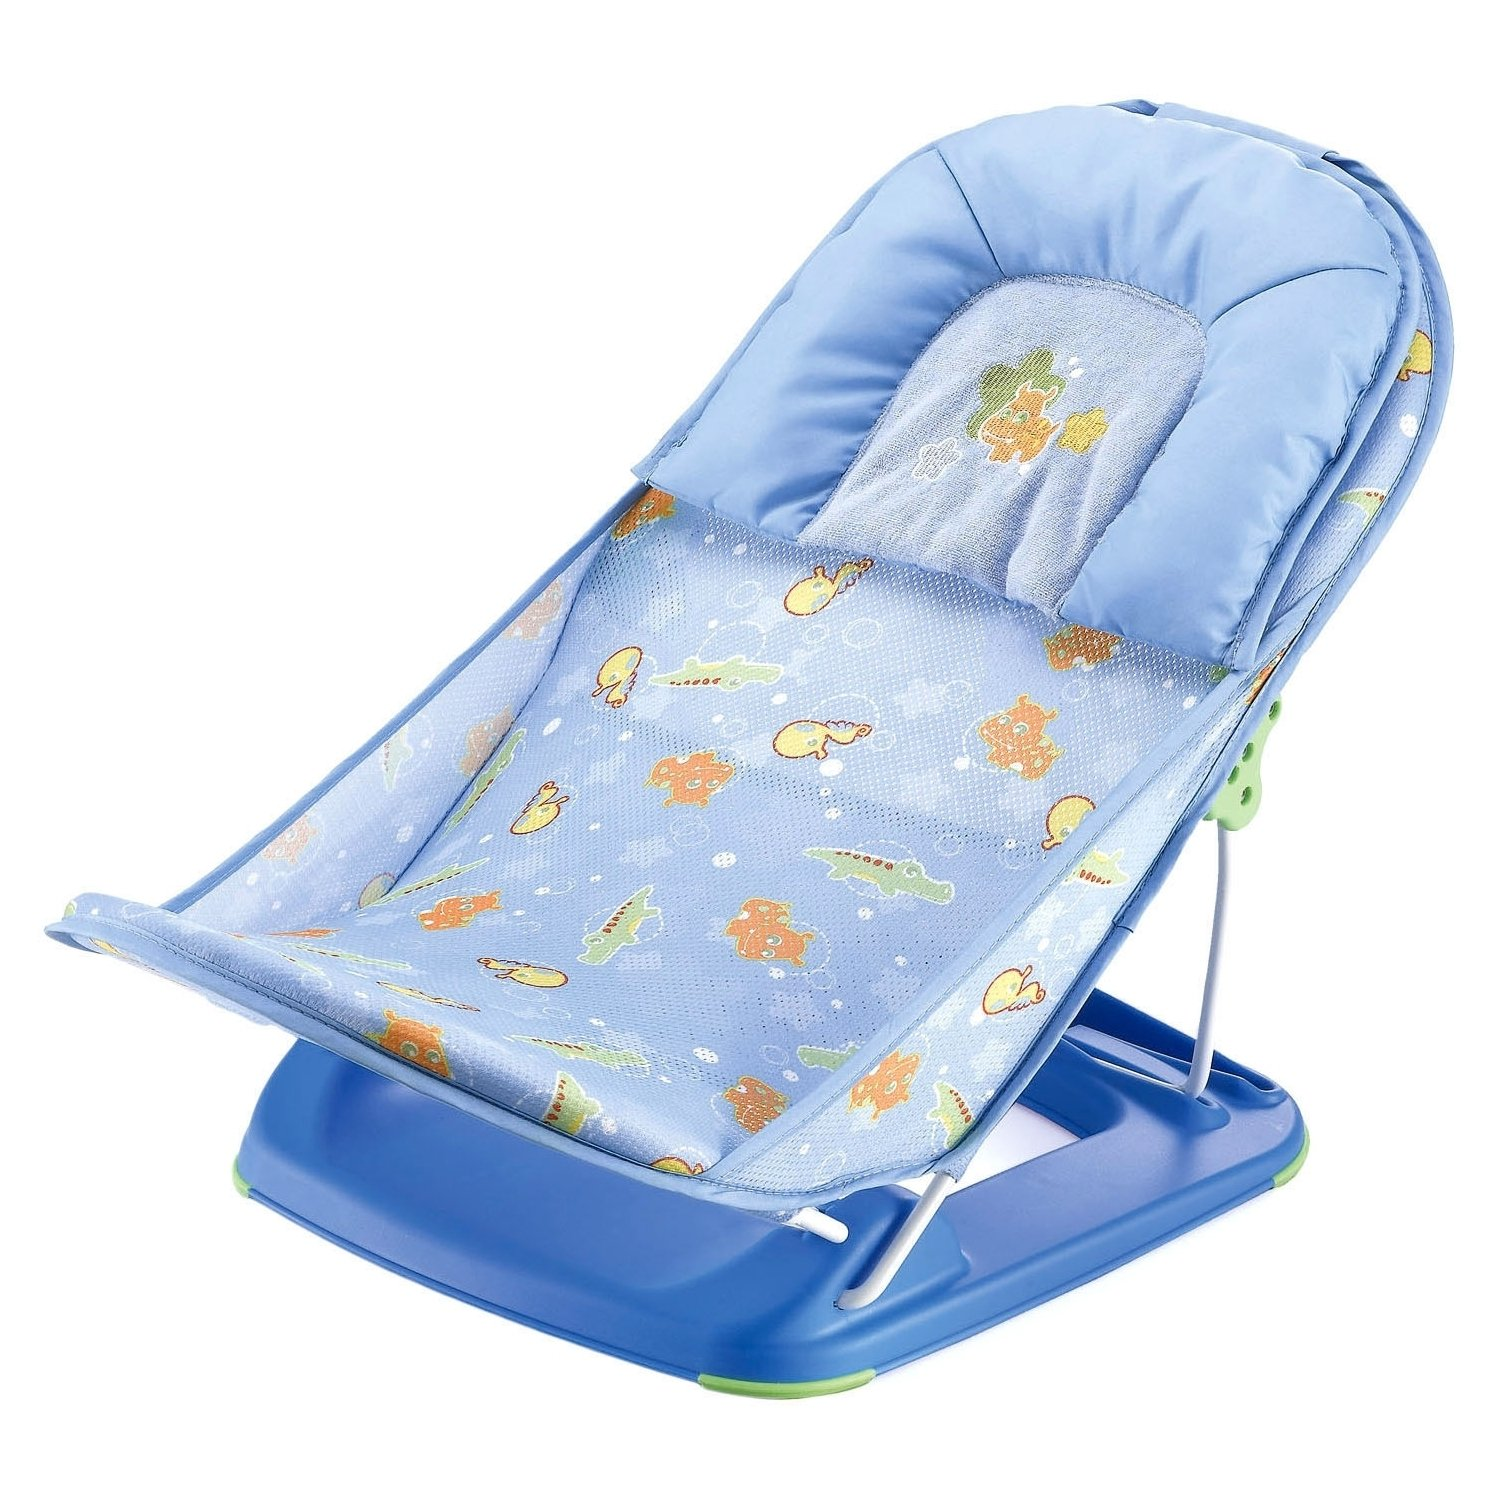 Baby bath chairs for the tub - Mastela Deluxe Baby Bather Blue Blue 0m